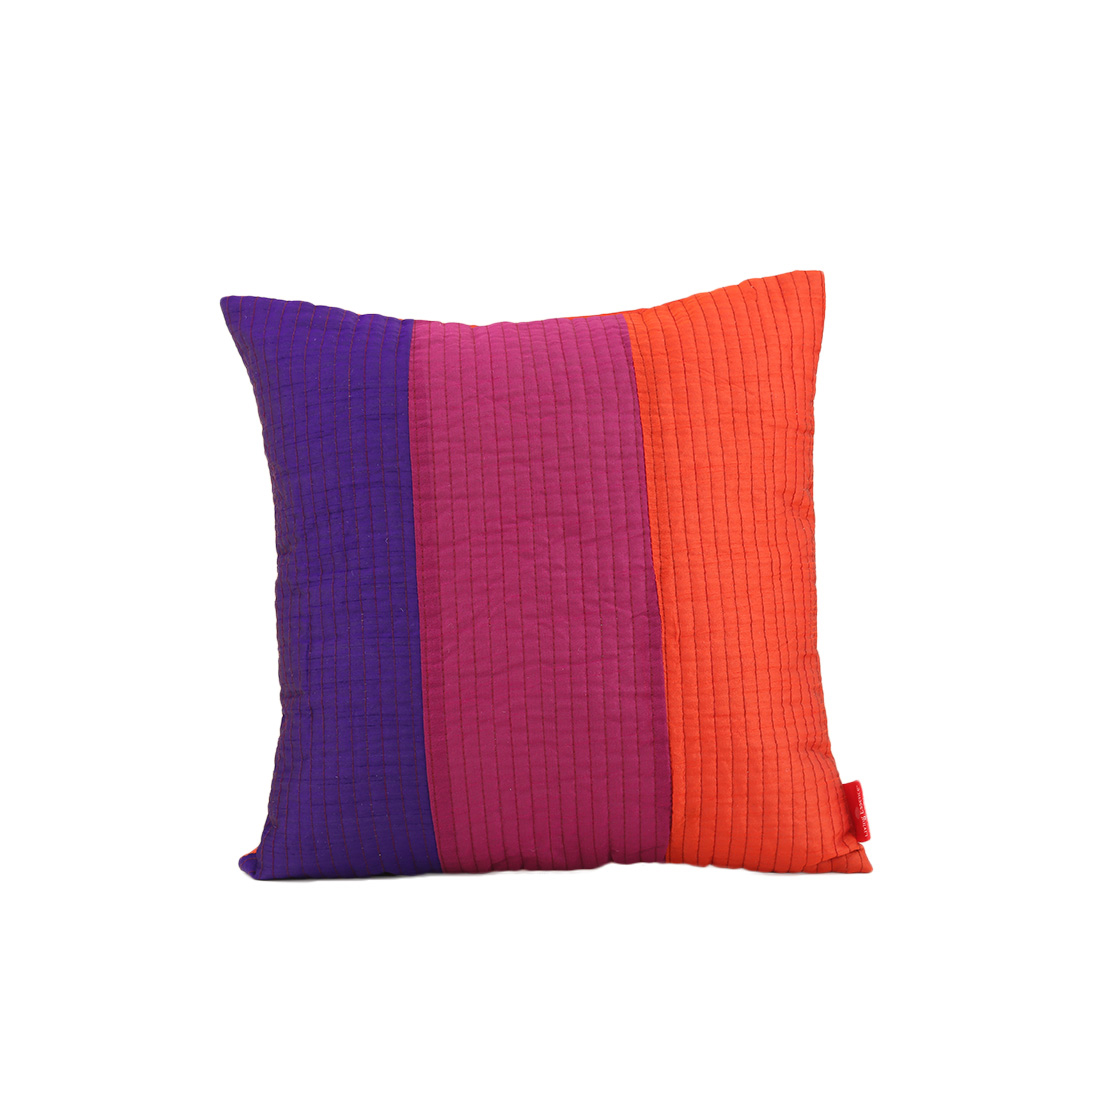 Fiesta Purple Polyester Cushion Covers in Purple Colour by Living Essence